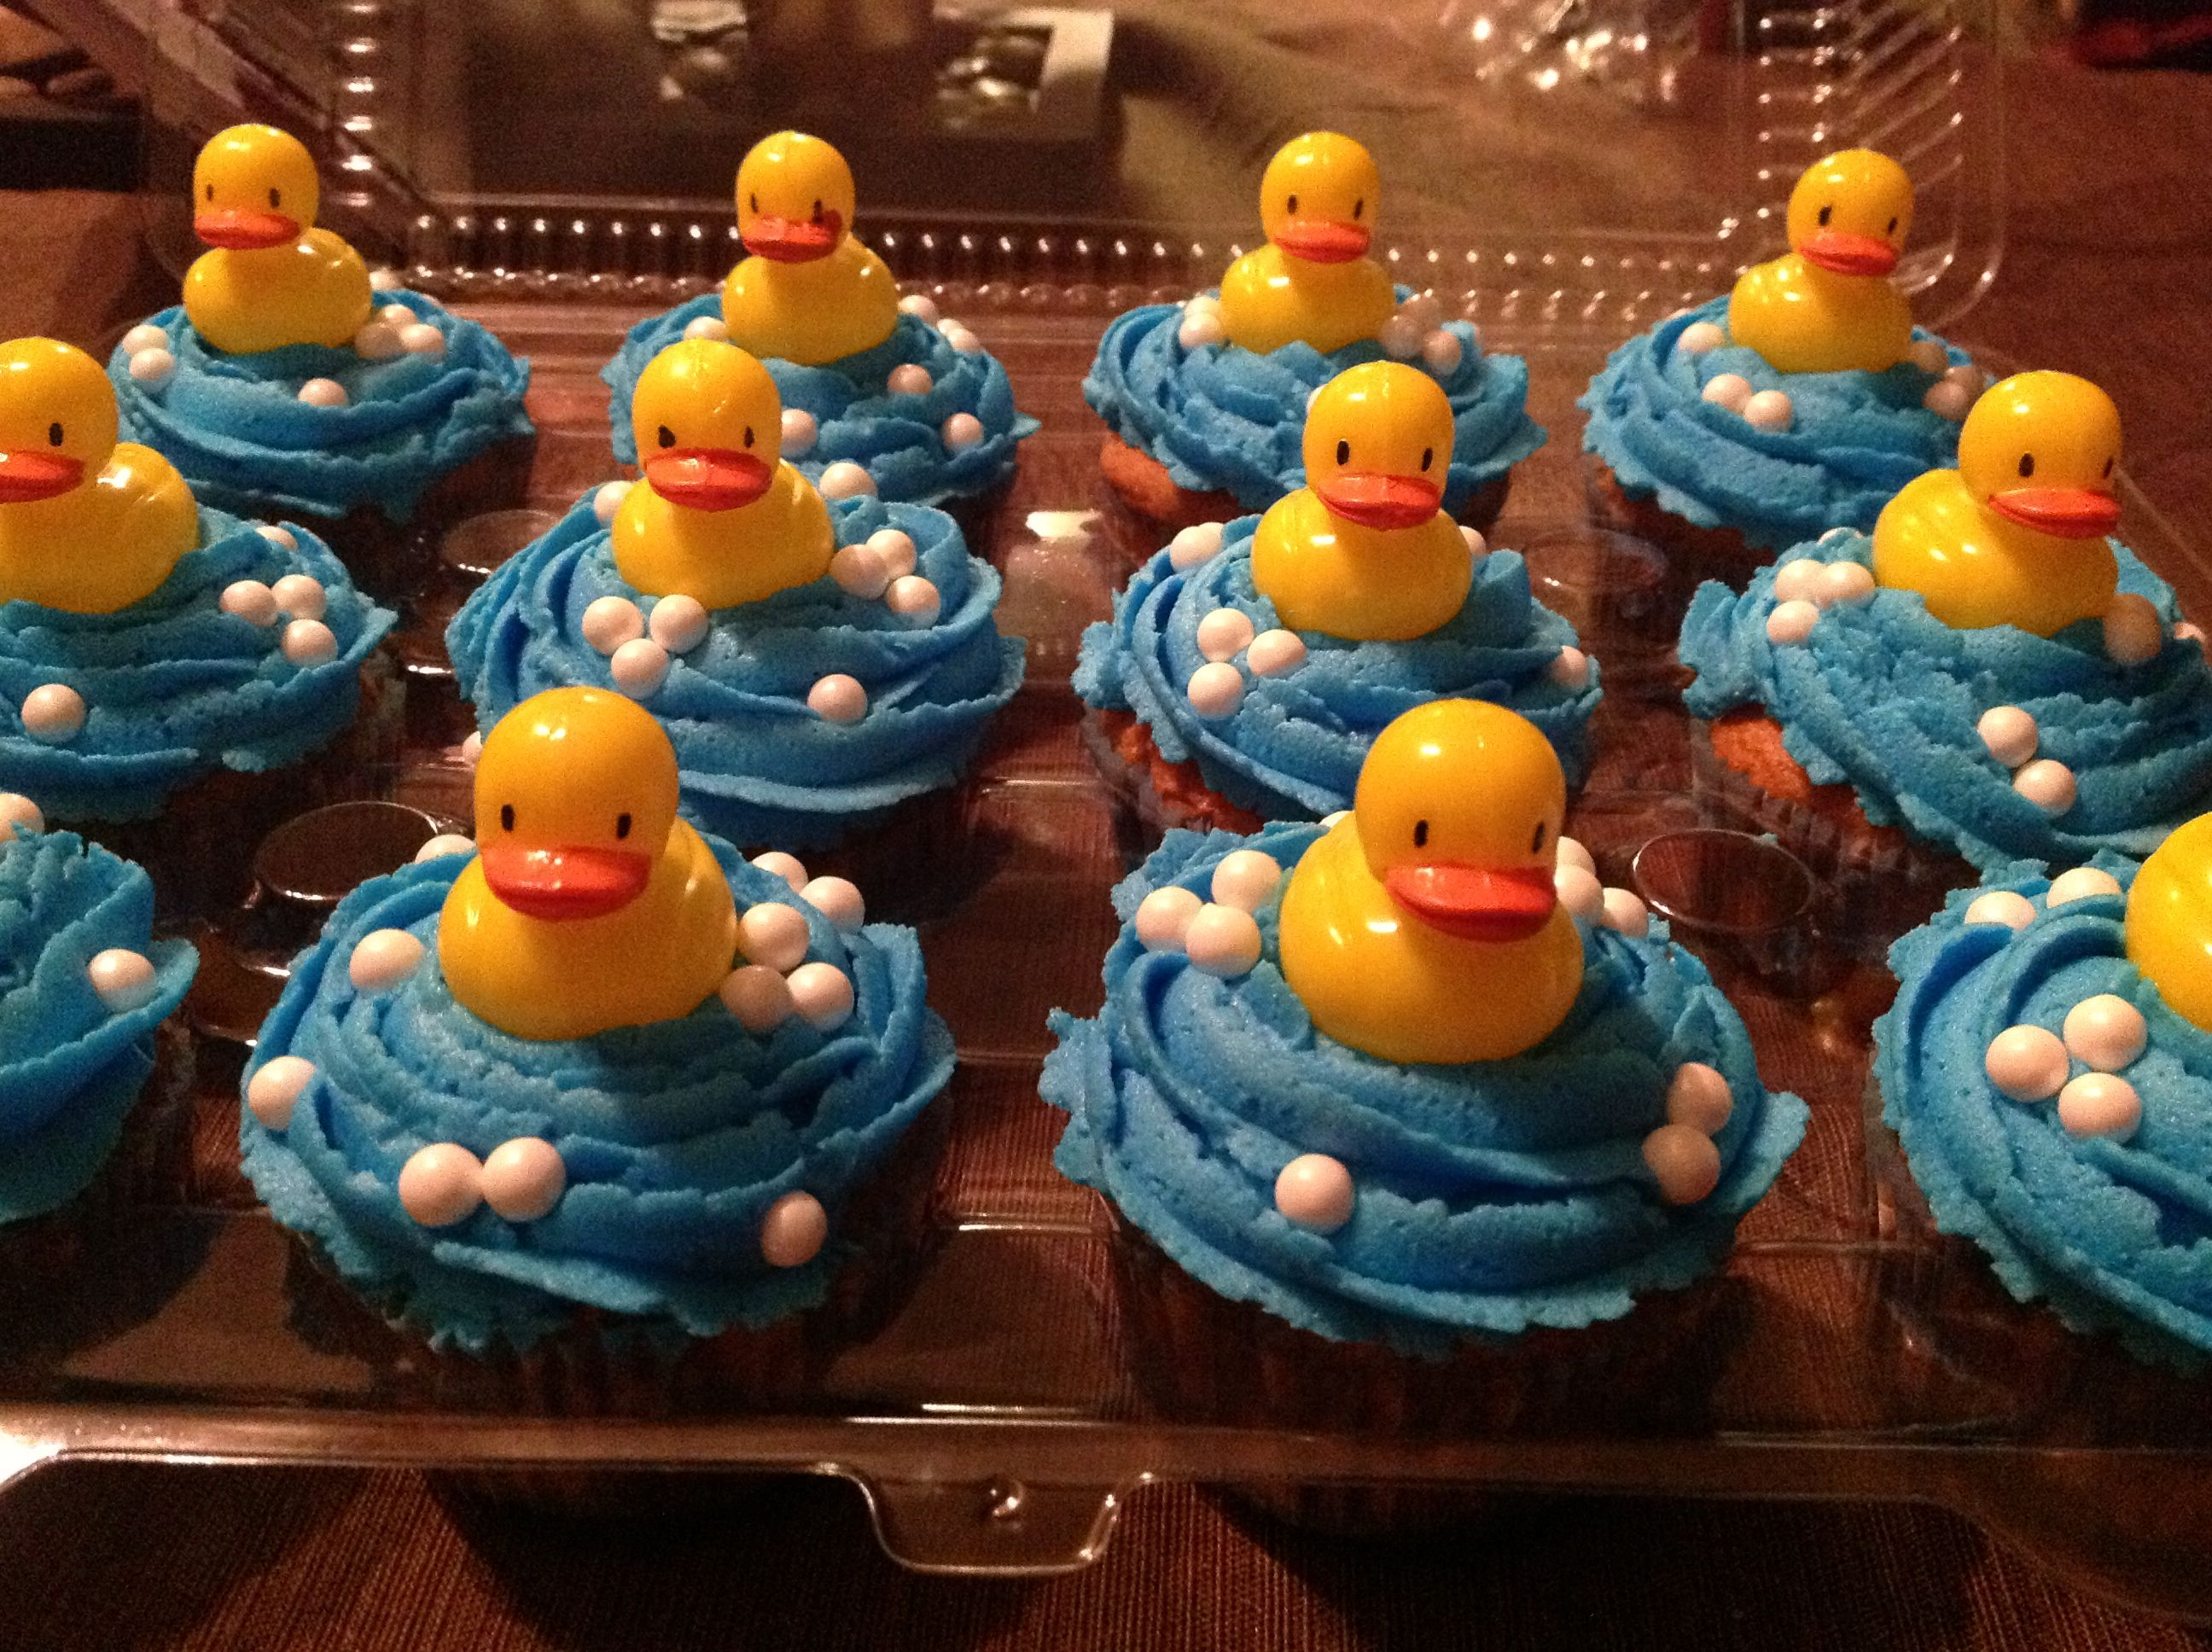 rubber ducky cupcakes for baby shower my crafts pinterest rubber ducky cupcakes for baby shower